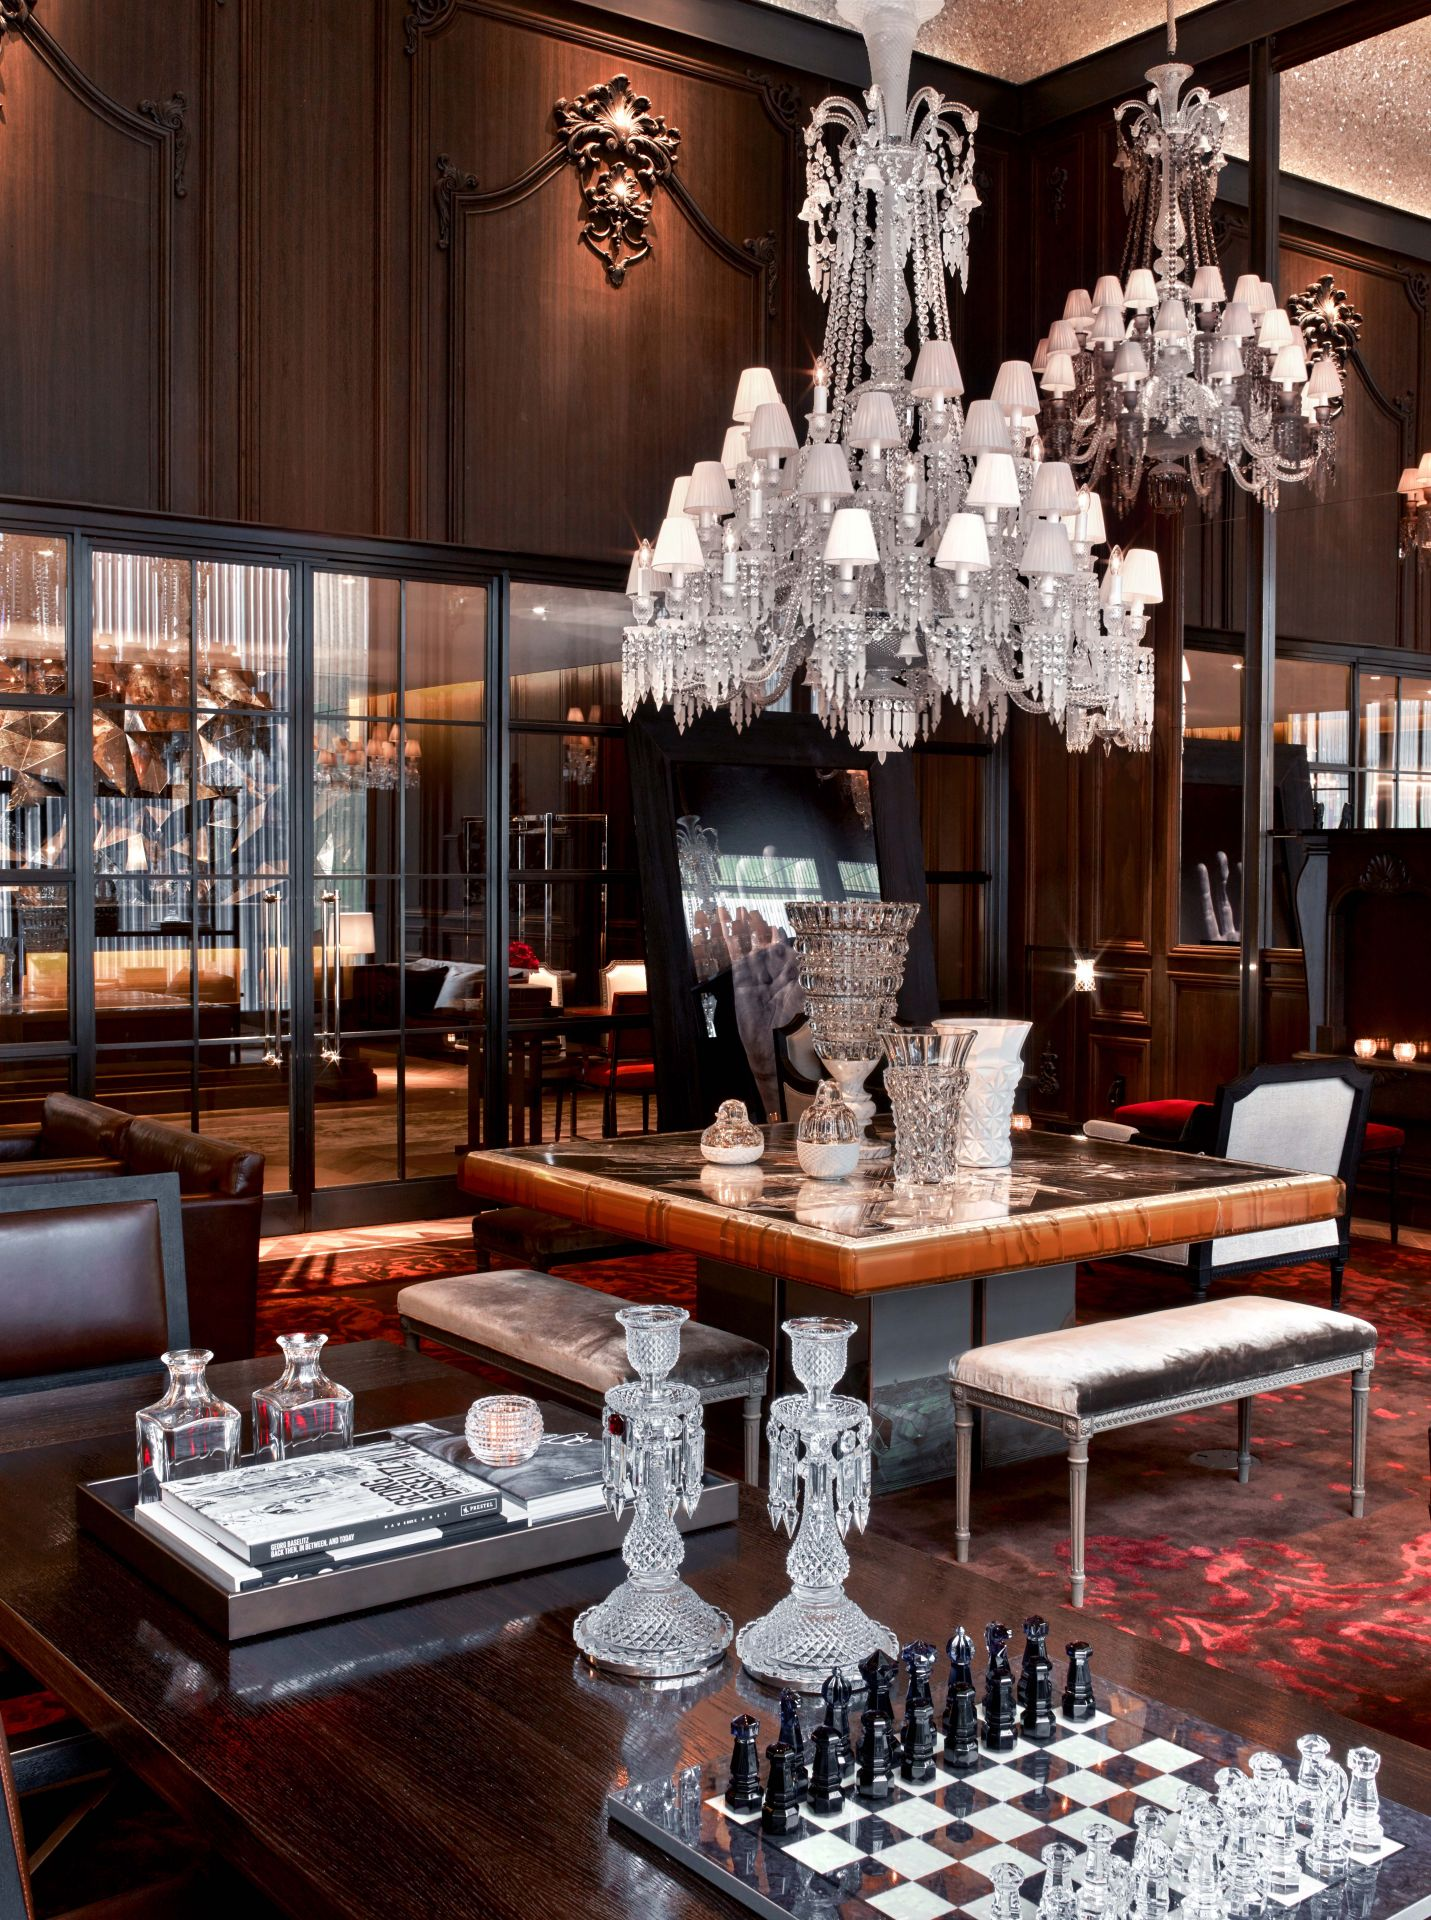 Baccarat hotel residences new york invitation au luxe - Baccarat hotel new york ...